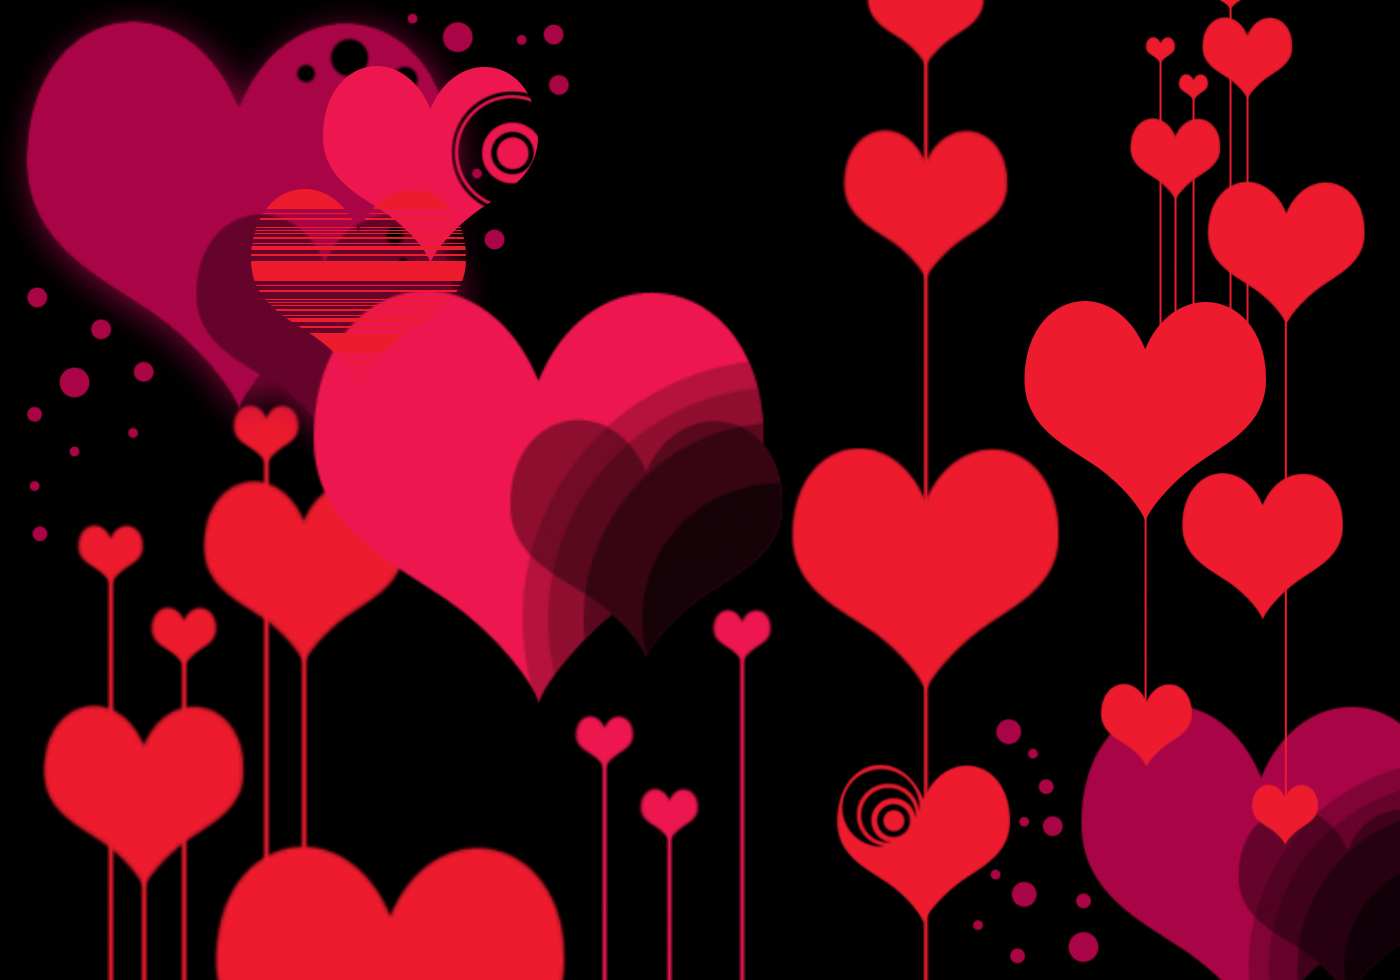 Vector-style-heart-photoshop-brushes